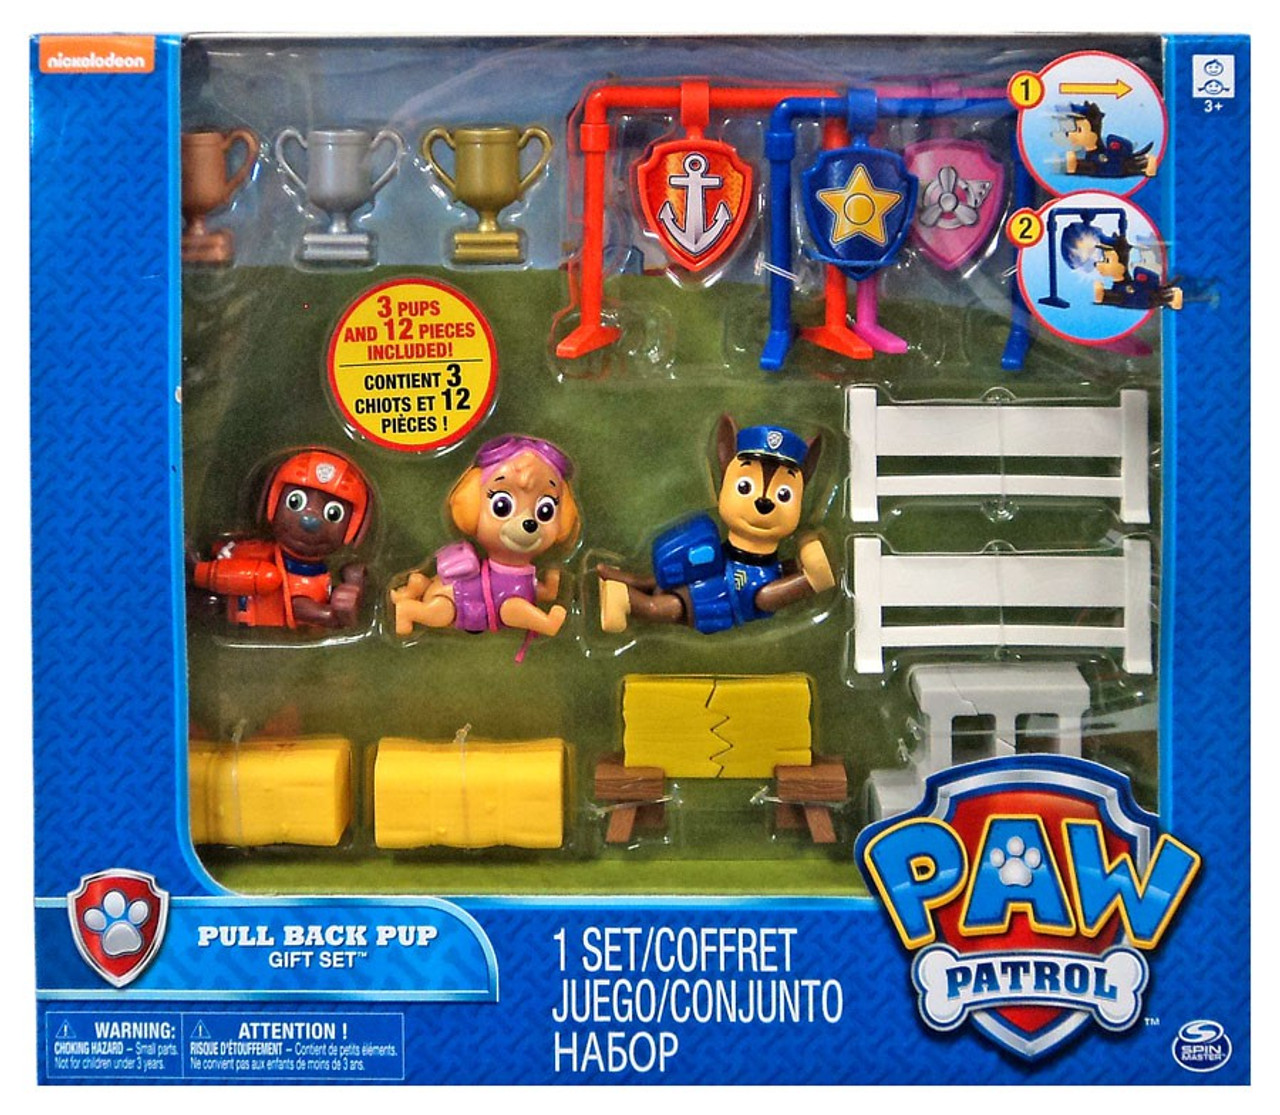 4d6f534a61f Paw Patrol Pull Back Pup 3-Pack Zuma, Skye Chase Exclusive Gift Set Spin  Master - ToyWiz